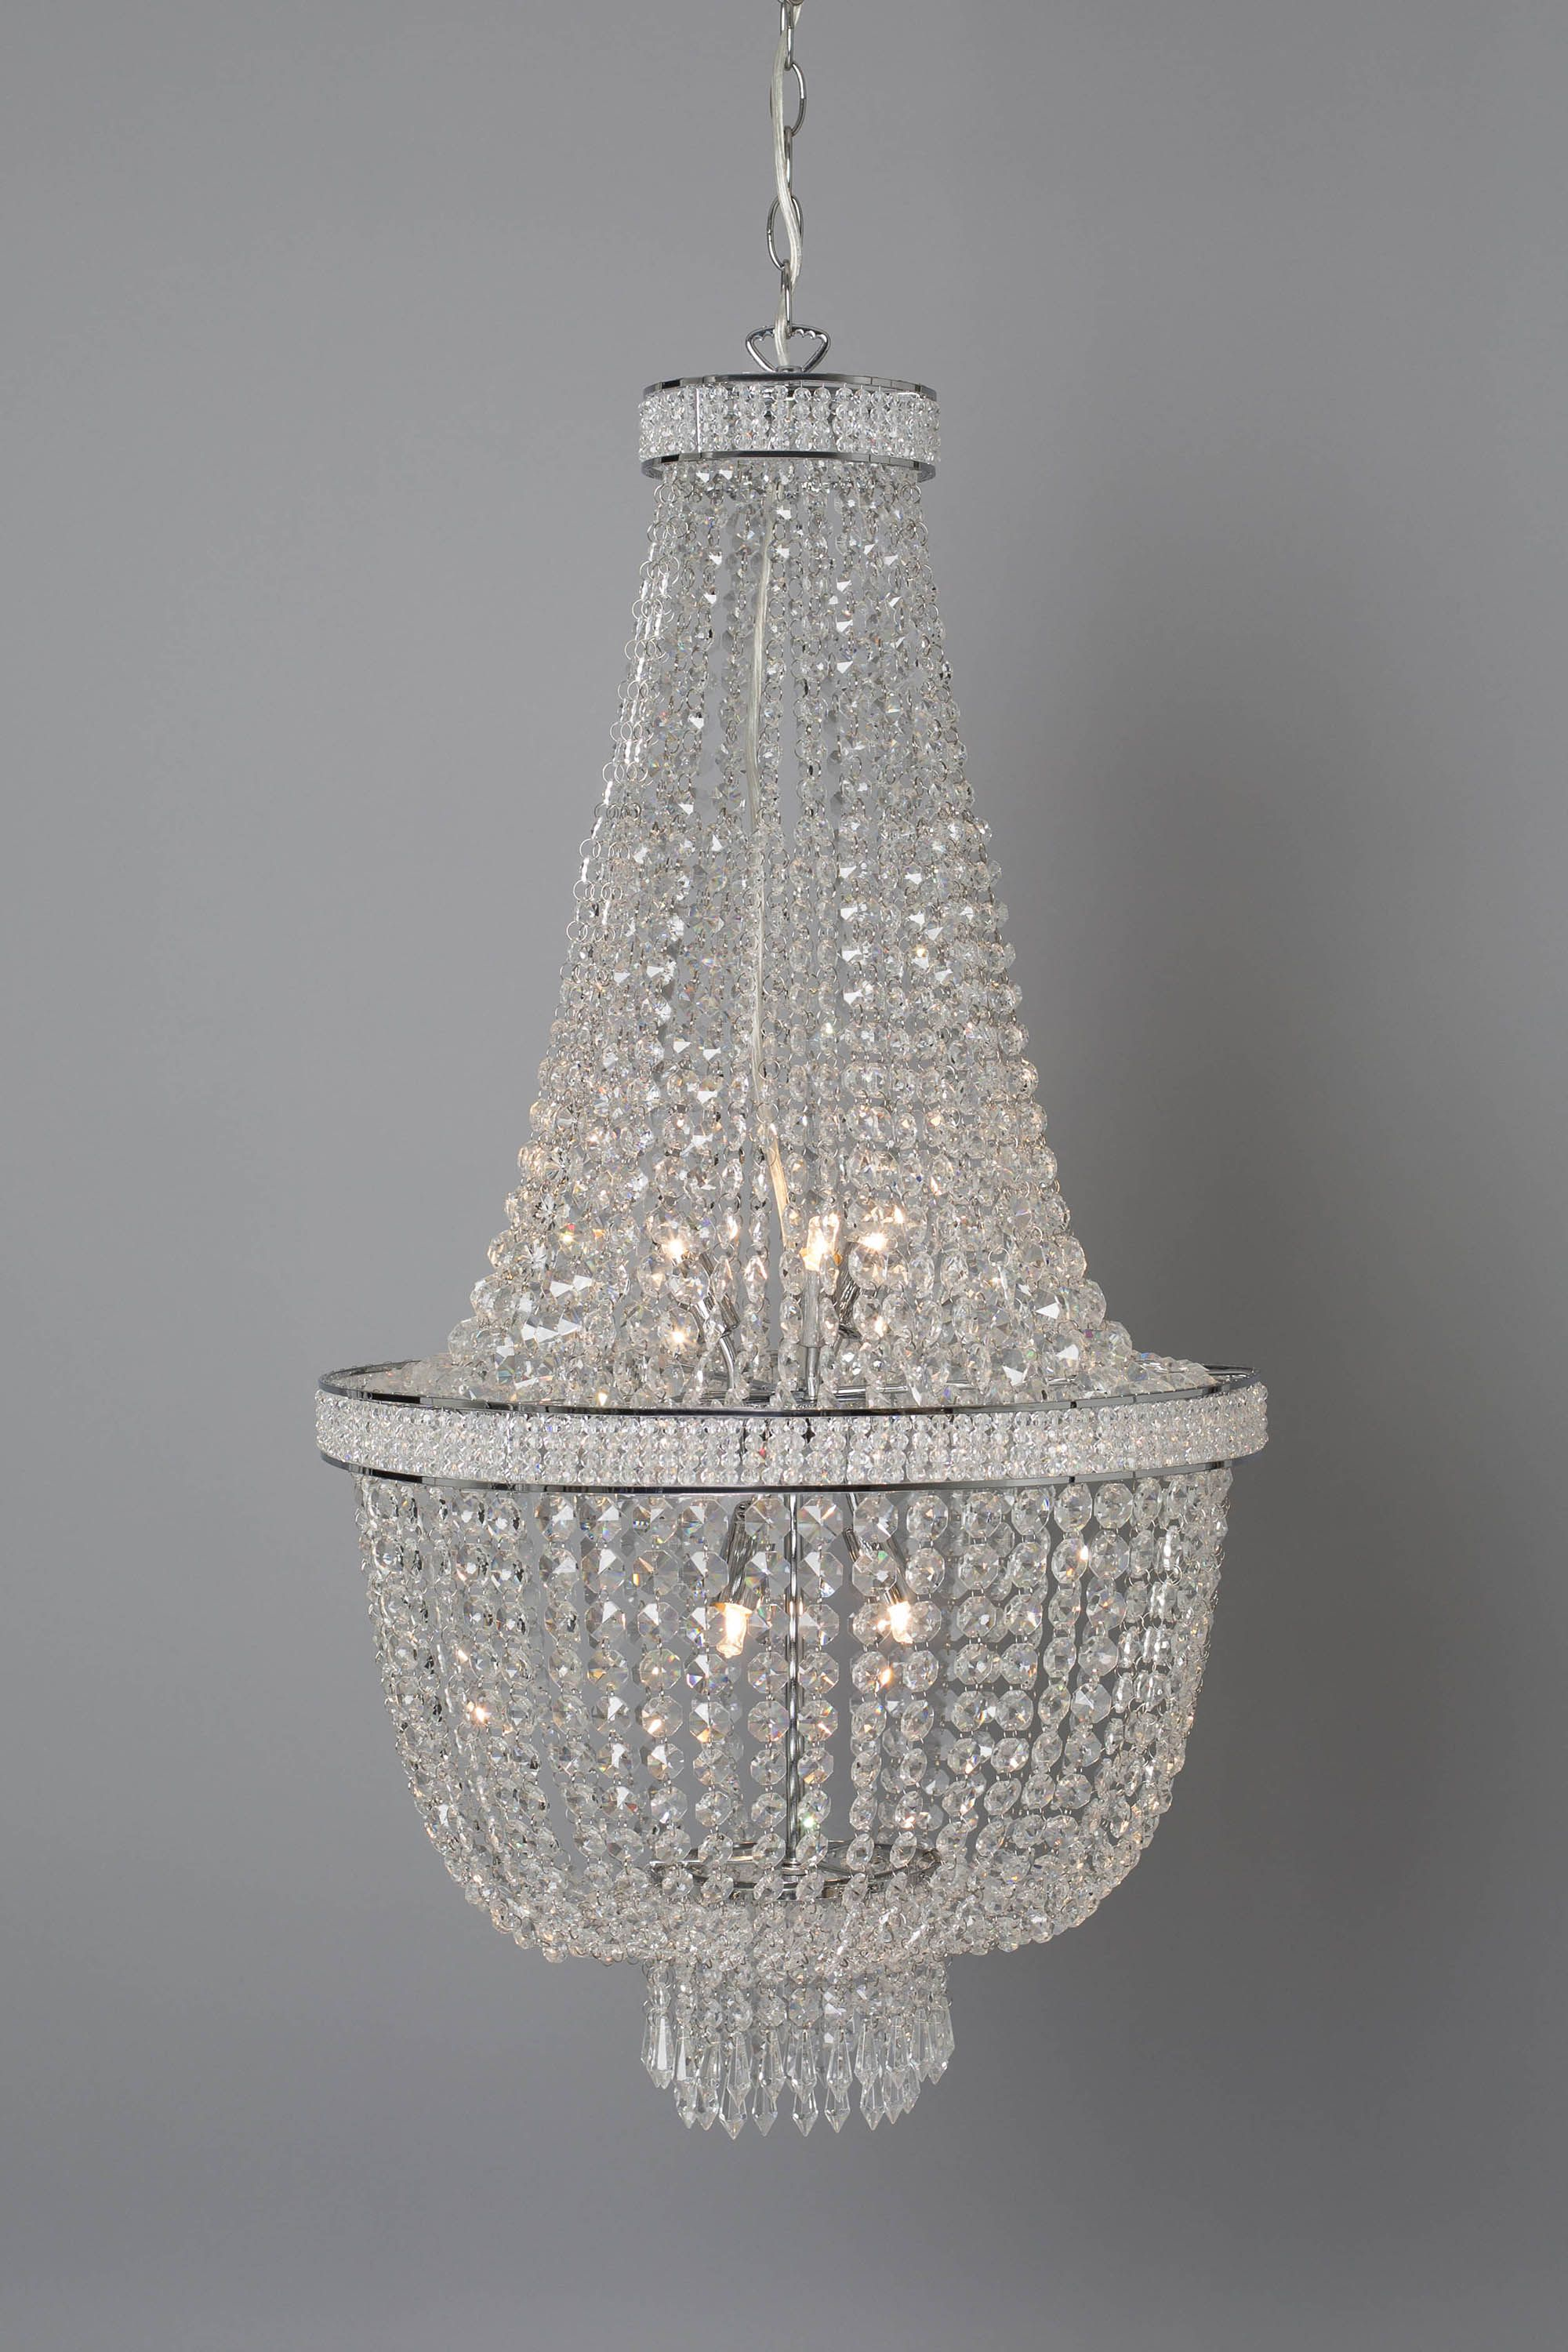 Emily chandelier bhs great finds pinterest emily chandelier bhs mozeypictures Image collections